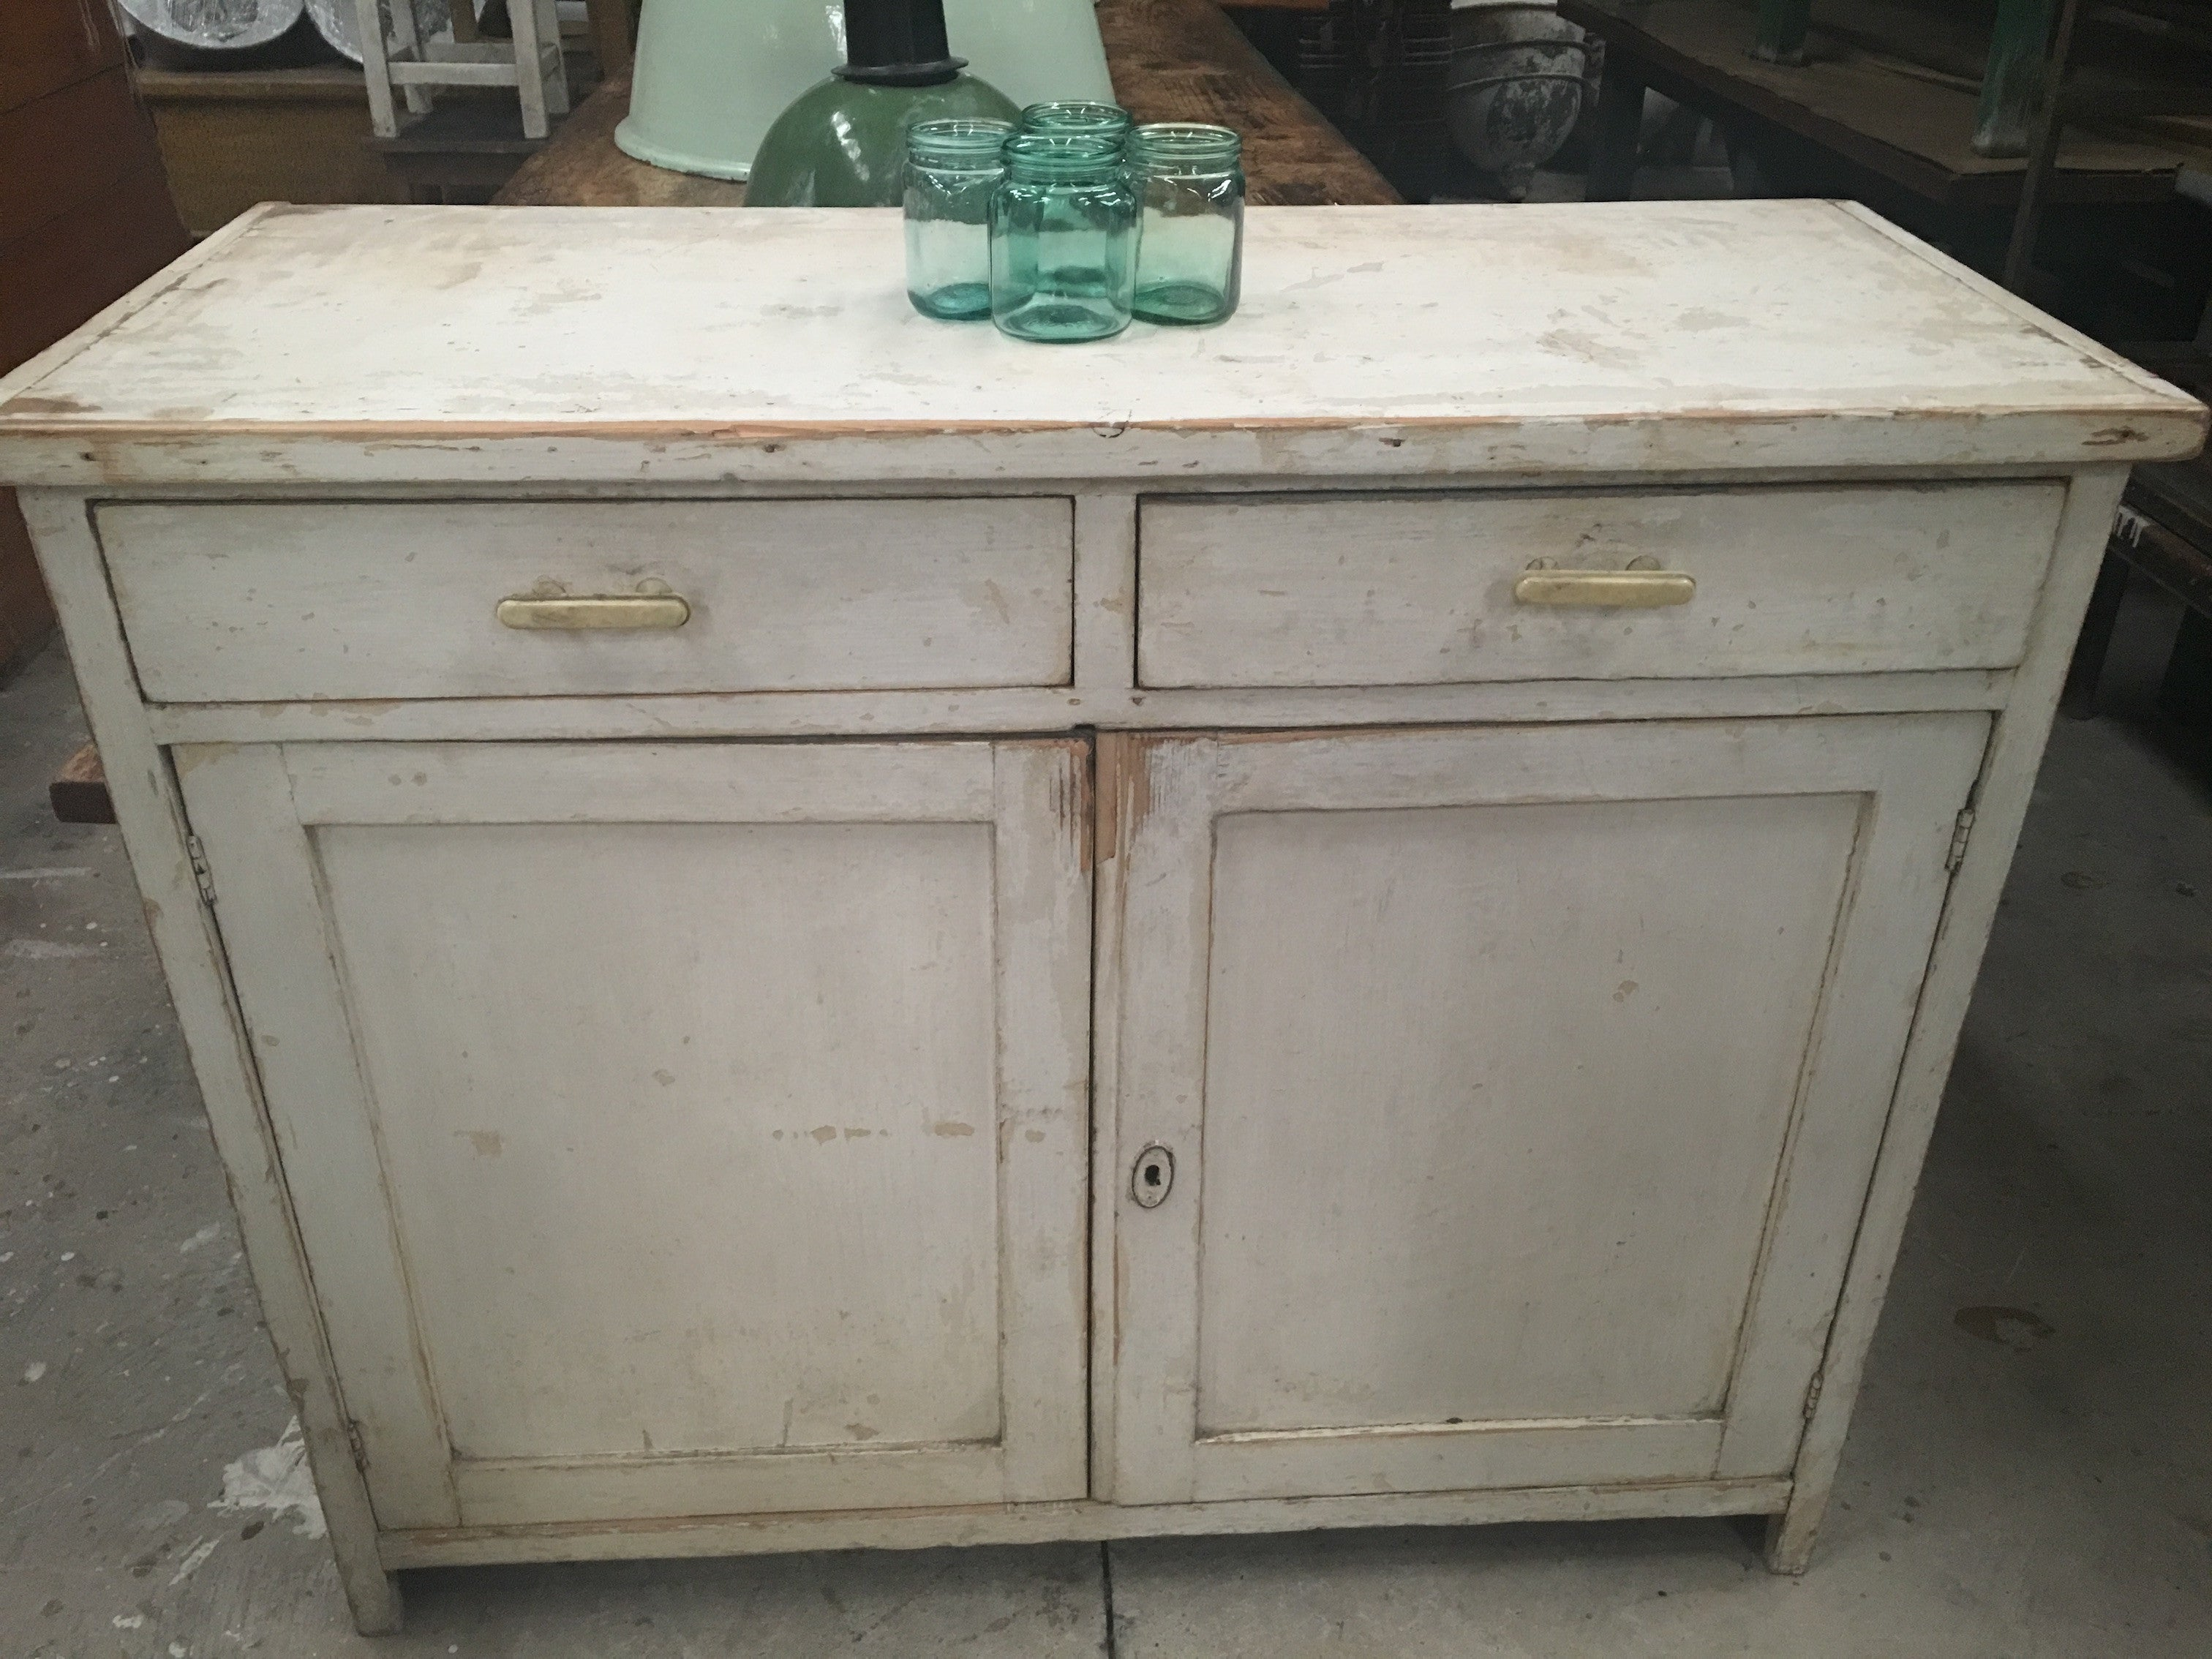 Vintage industrial European wooden kitchen cabinet #1654